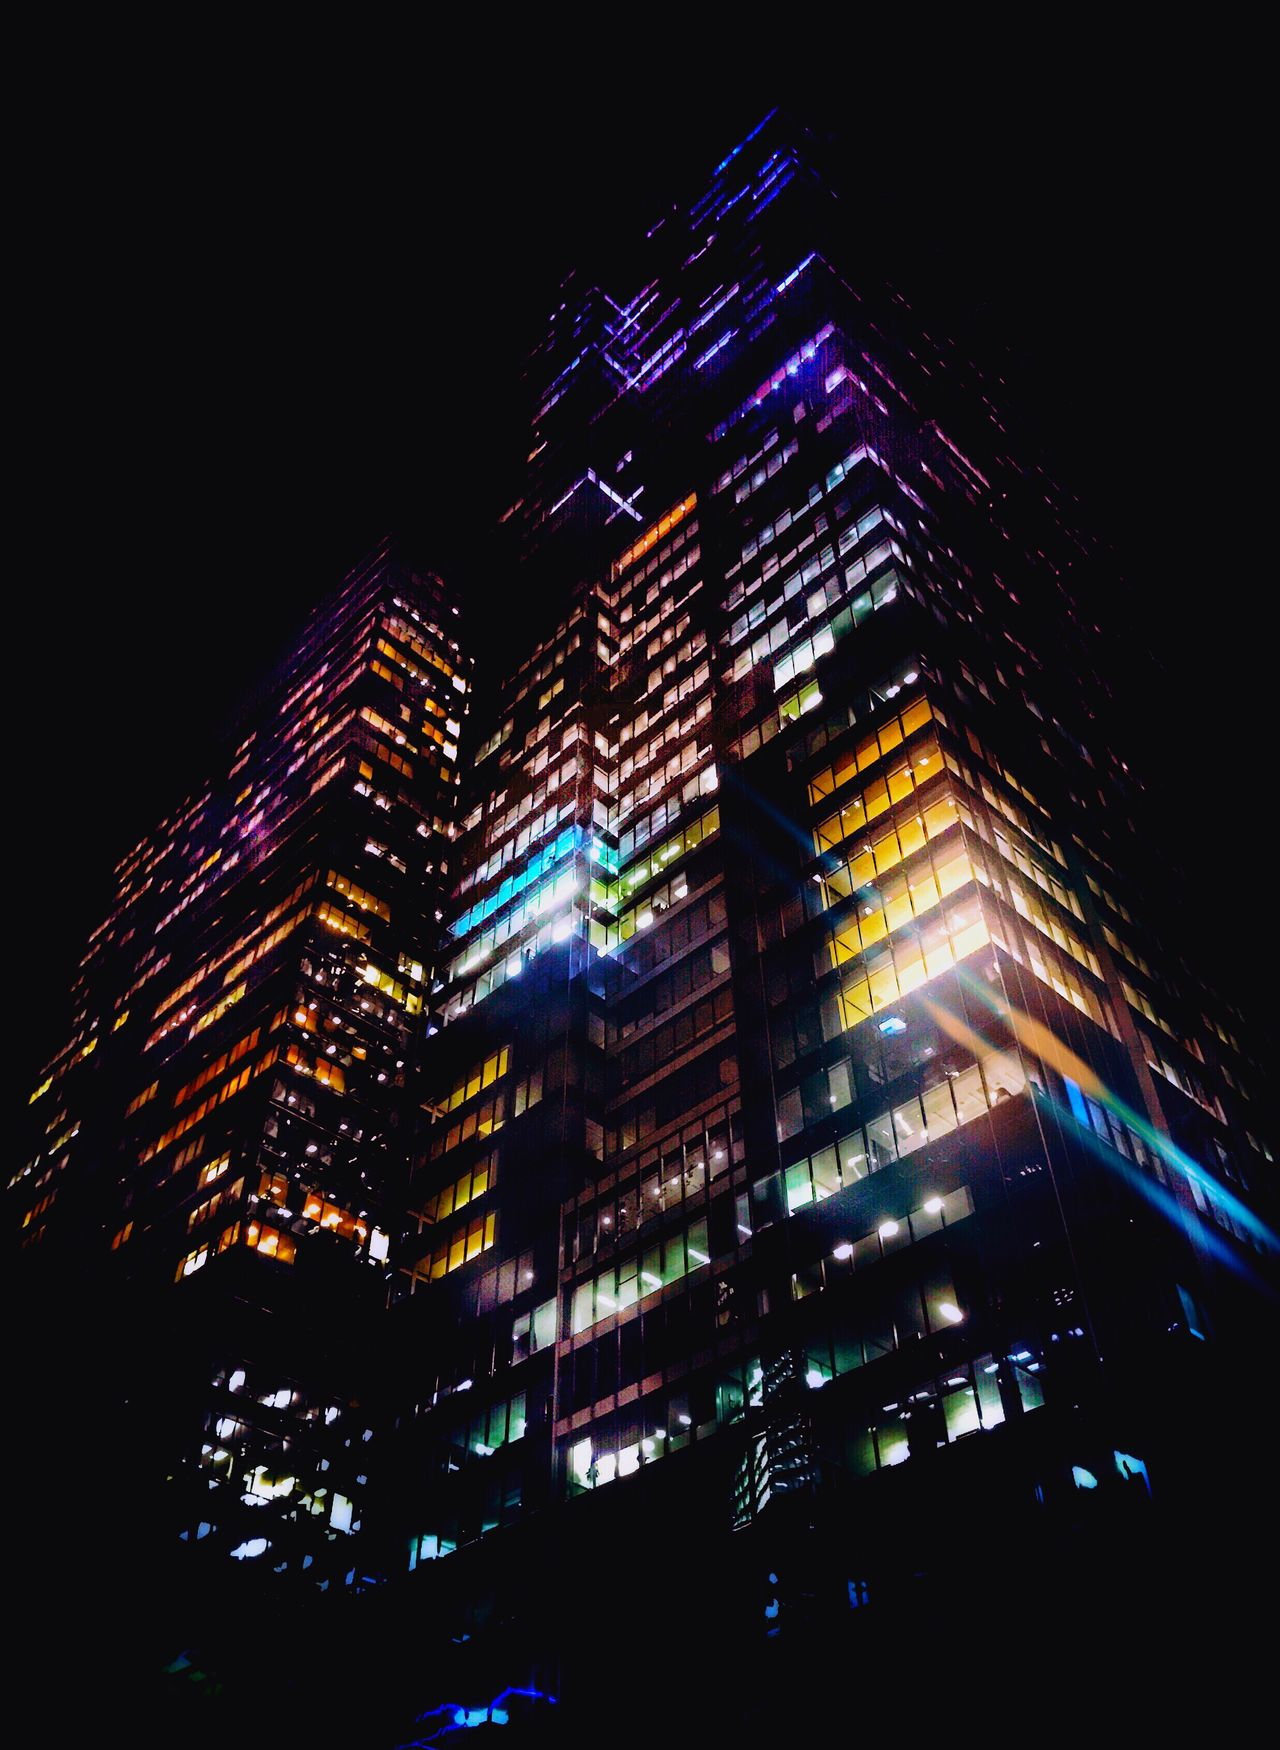 Layers And Colors Illuminated Skyscraper 🌃 Night Sky Colorsplash Architecture Low Angle View Mextures Fun Chicago Chicago Architecture Chicago Skyline Visit Travel Love My City City EyeEm Night Lights Eyemgallery EyeEmBestPics Pic Picture Pictureoftheday iPhone